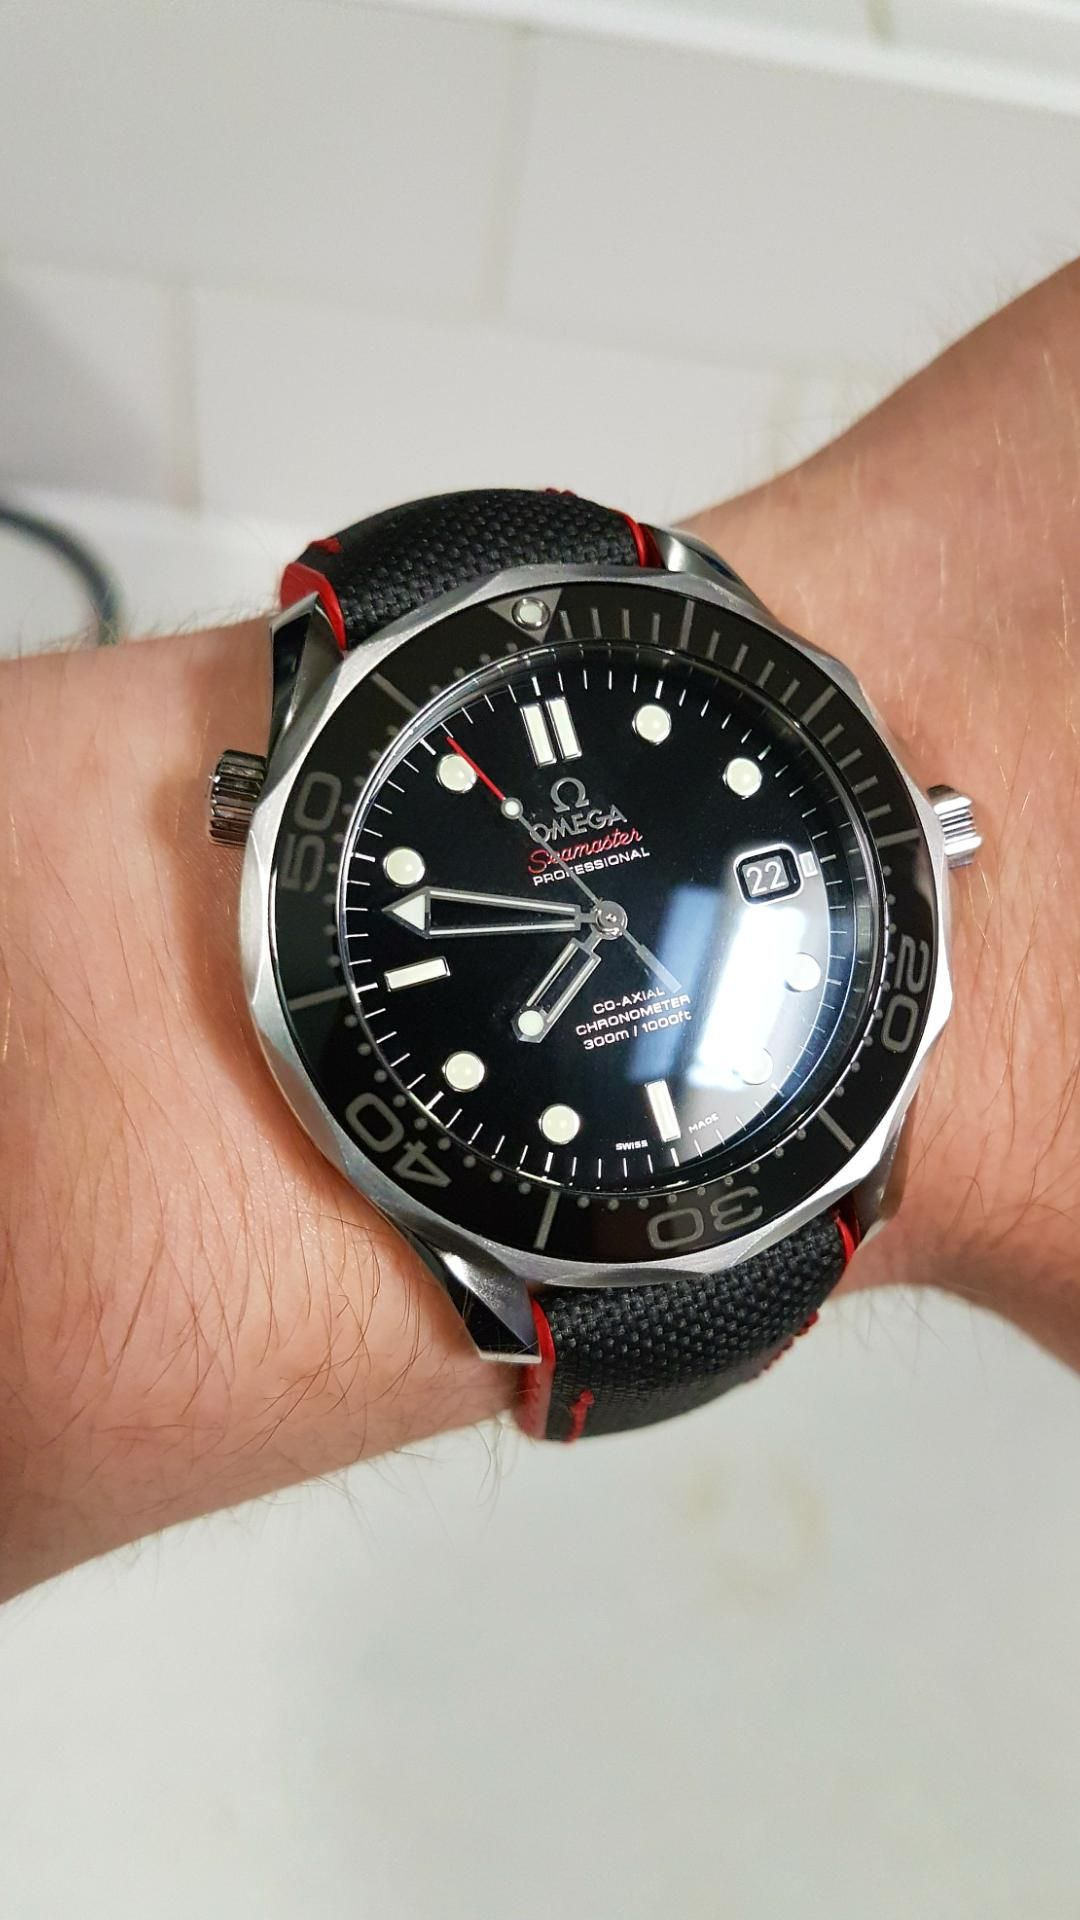 210325a05 [OMEGA] Hirsch strap looks like it was made for the SMP <3 Another happy  customer shows us his Omega Seamaster on a Hirsch Robby Performance strap,  ...